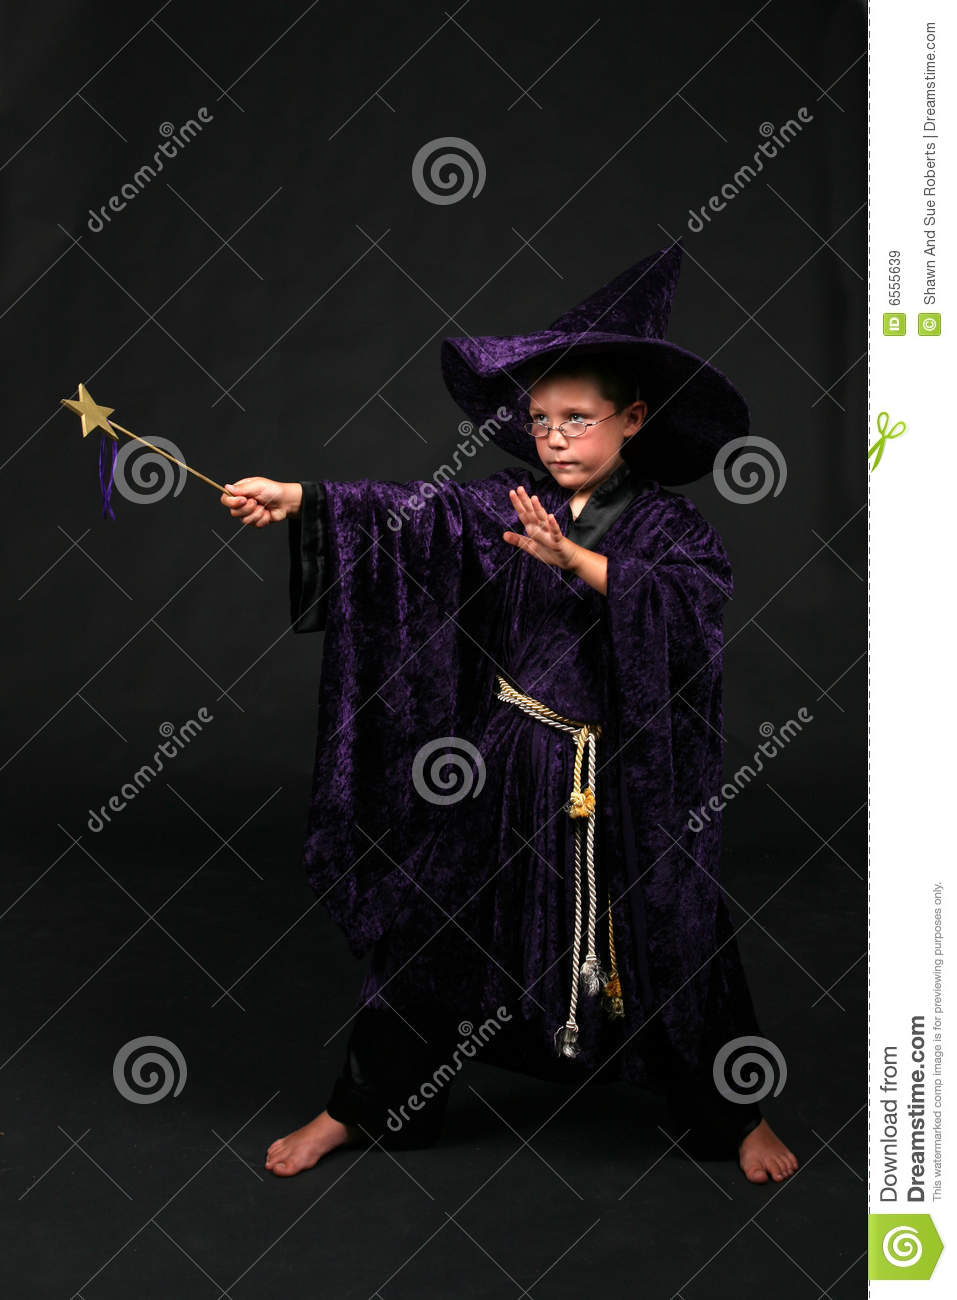 Wizard Boy With Magic Wand Casting A Spell Royalty Free Stock ...